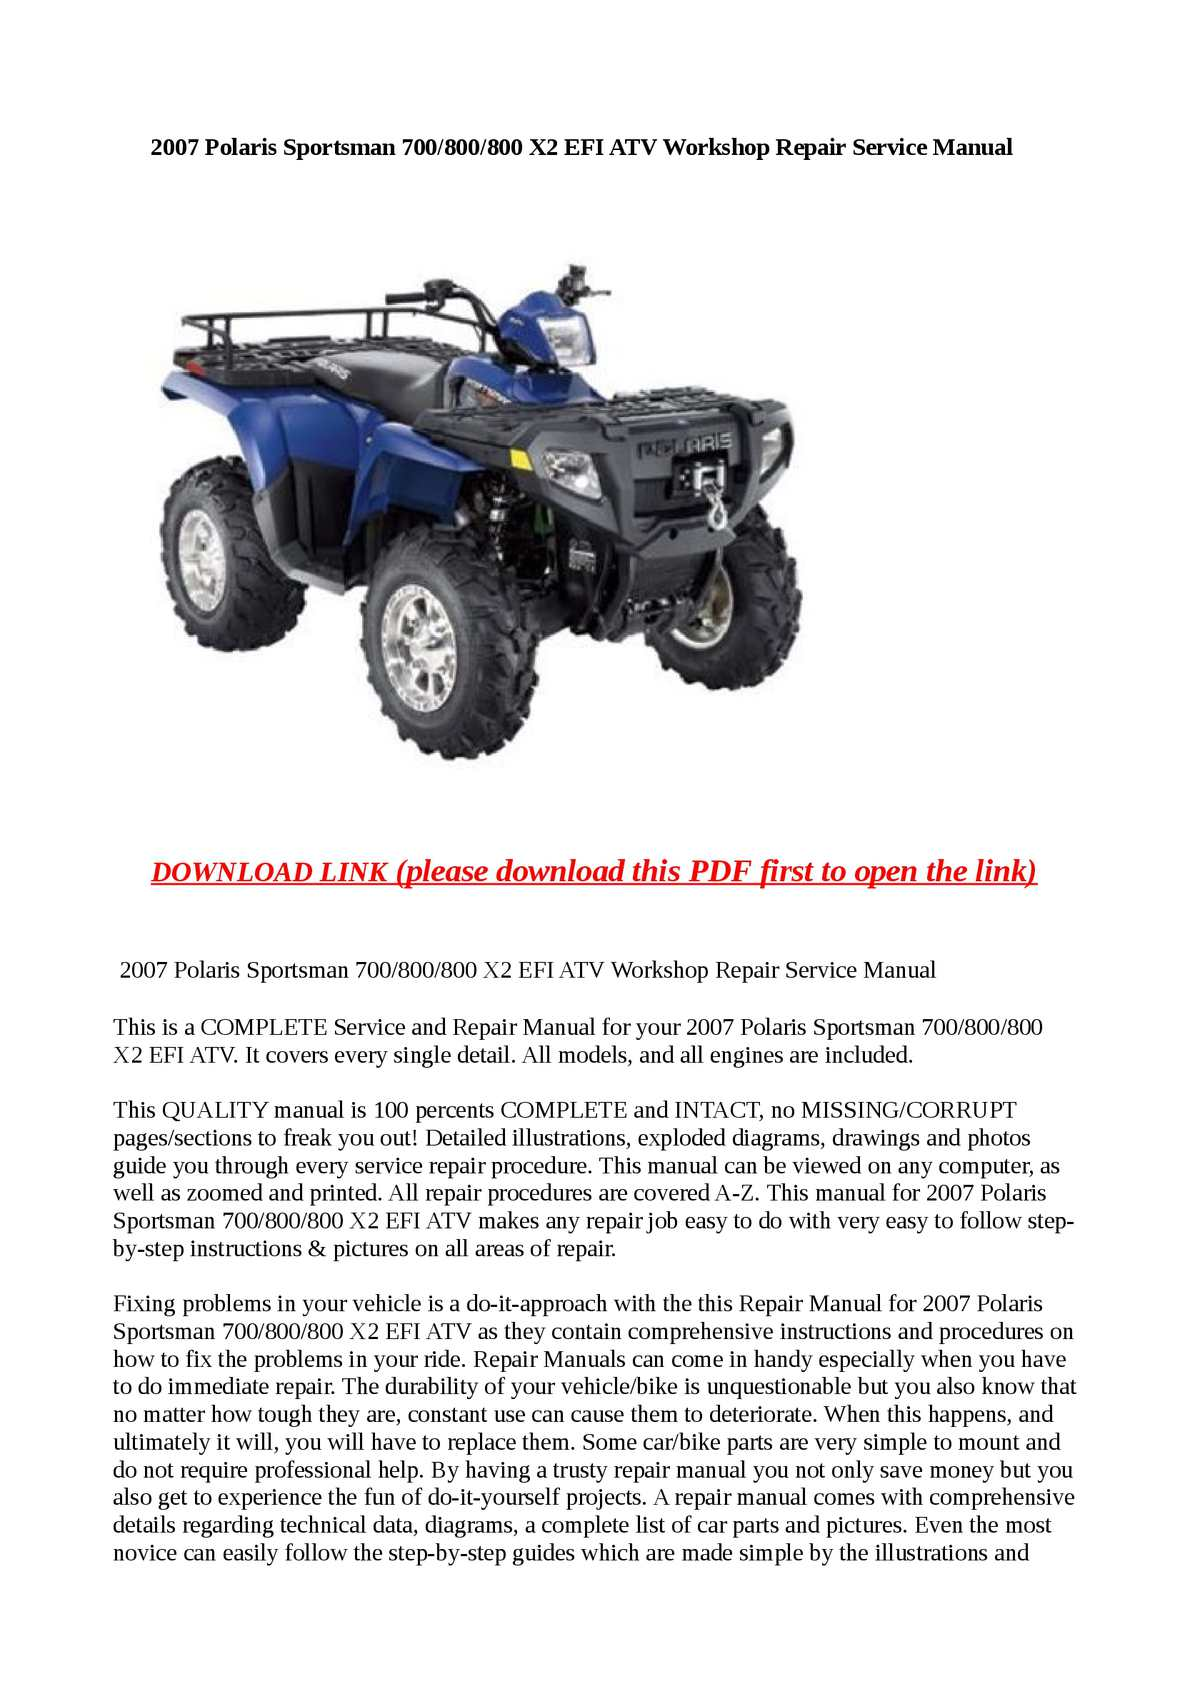 2002 Polaris Sportsman 700 Parts Manual Pdf